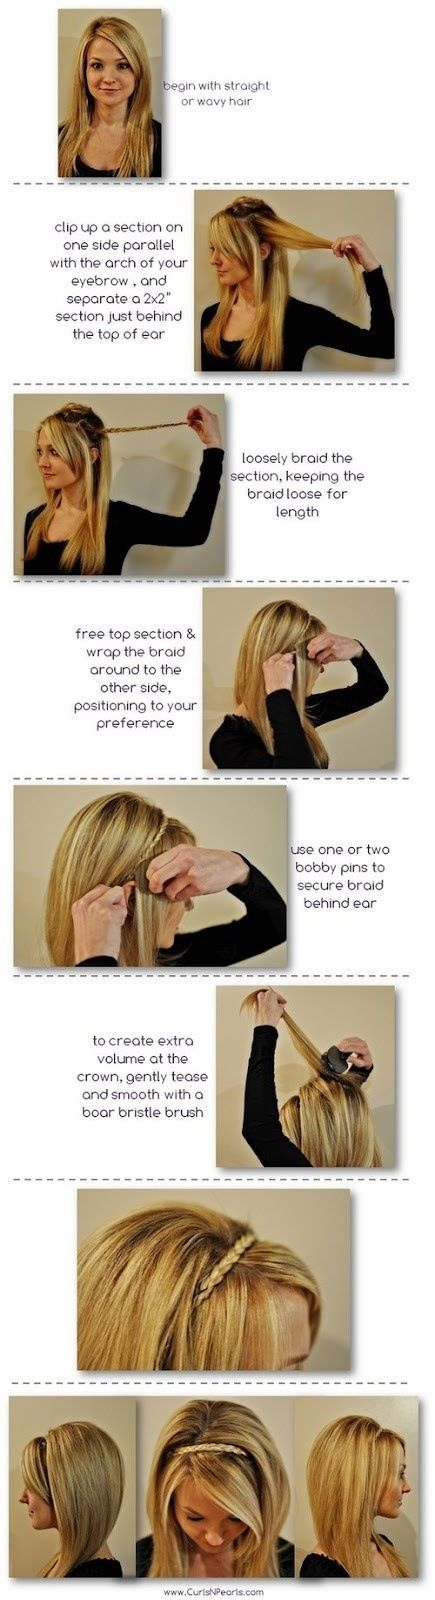 More detail on the earlier post of mine on the braid headband! A lot easier to understand